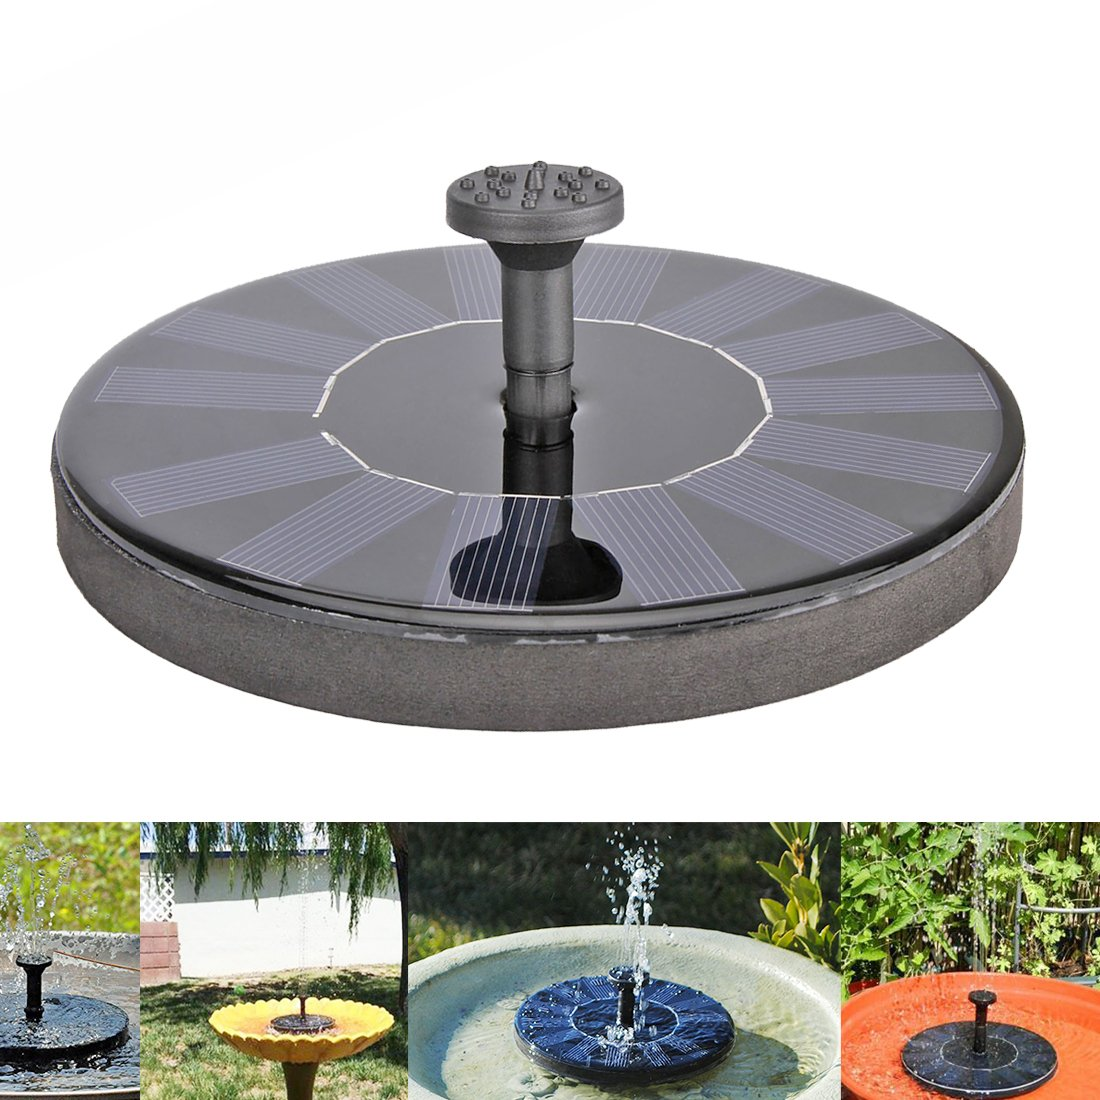 B2COOL Solar Bird Bath Fountain Pump for Garden Pond Pool Water Cycle, 1.4W Outdoor Watering Submersible Pump Kit